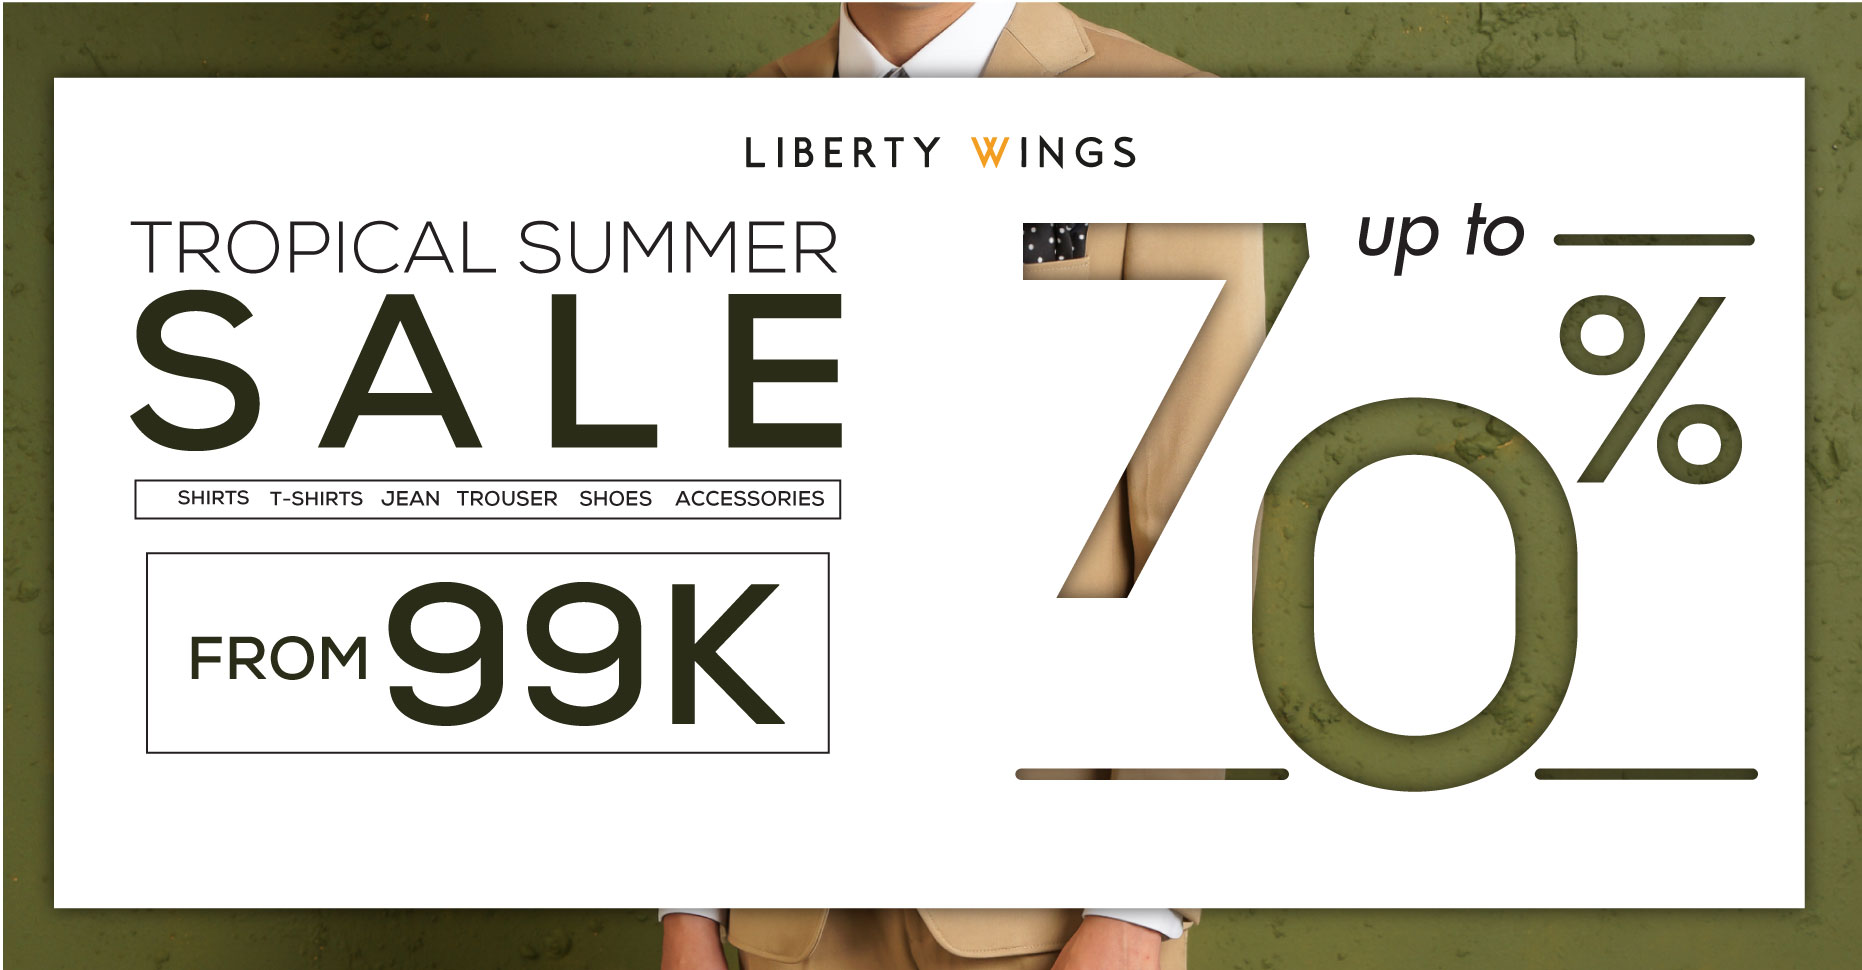 liberty wings sale up to 70